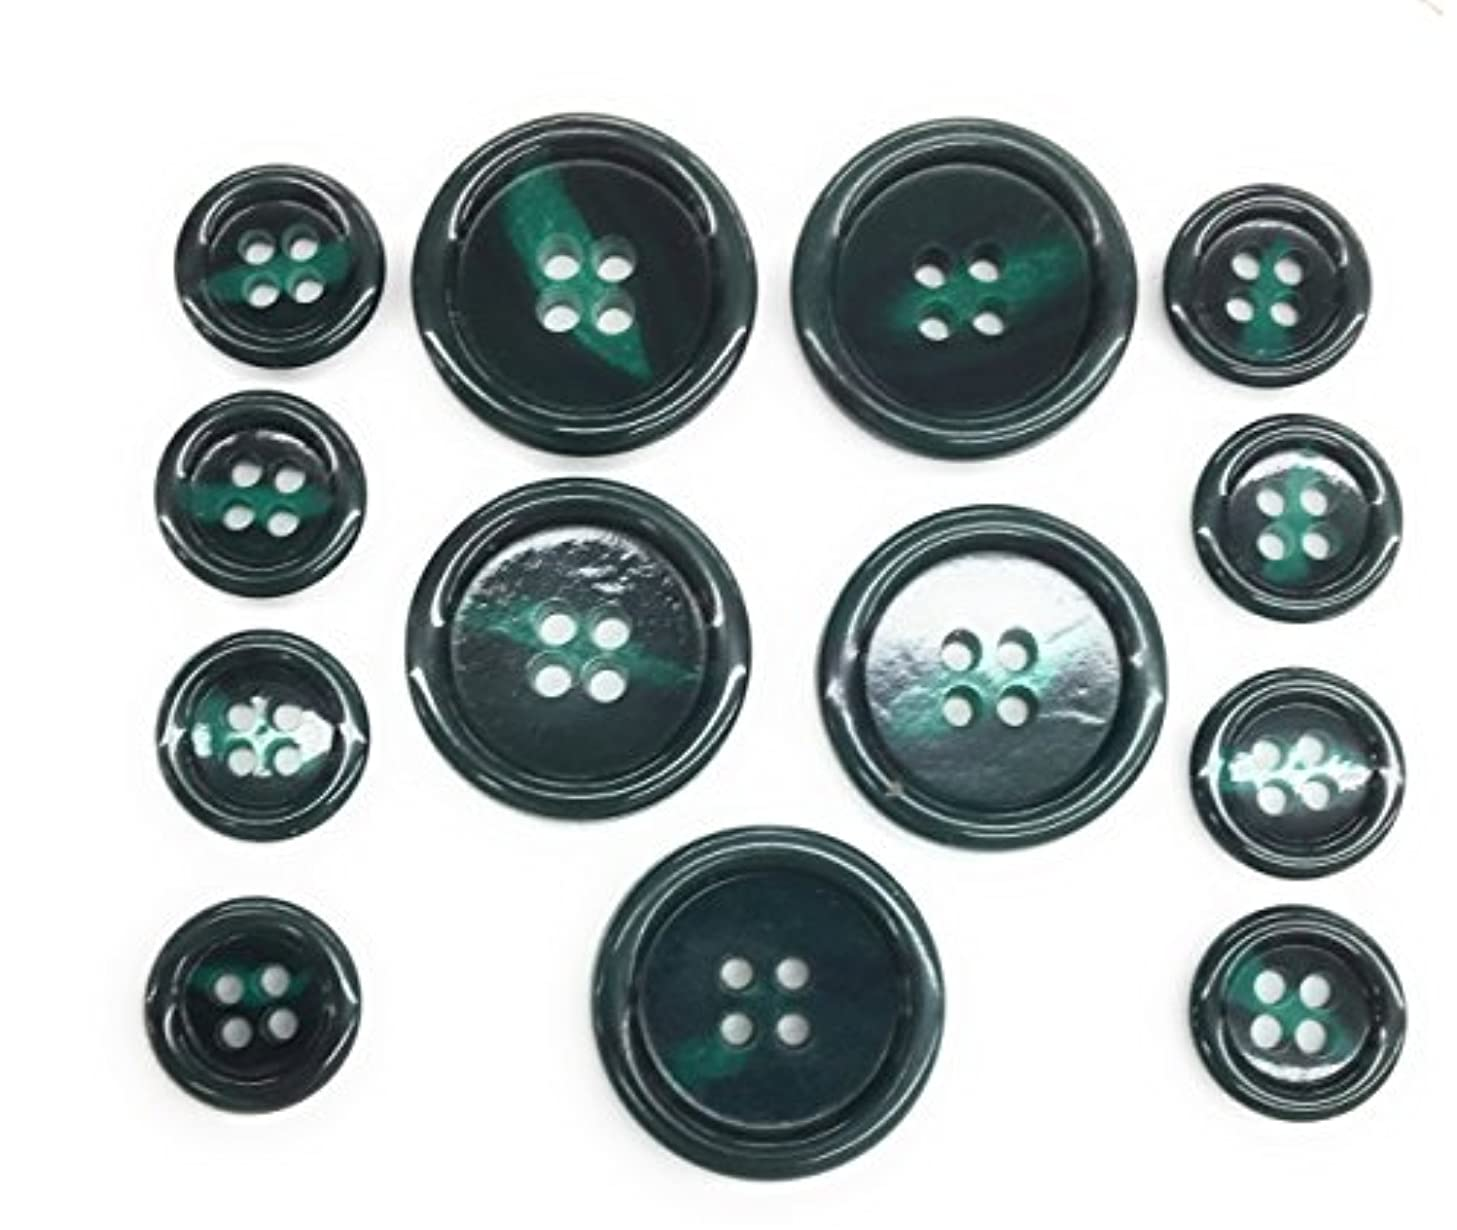 GREEN BUTTONS Set 4 Holes Tailored for Suits, Sport coats, Jacket and Blazer 13pc.5/8''- 7/8 ''